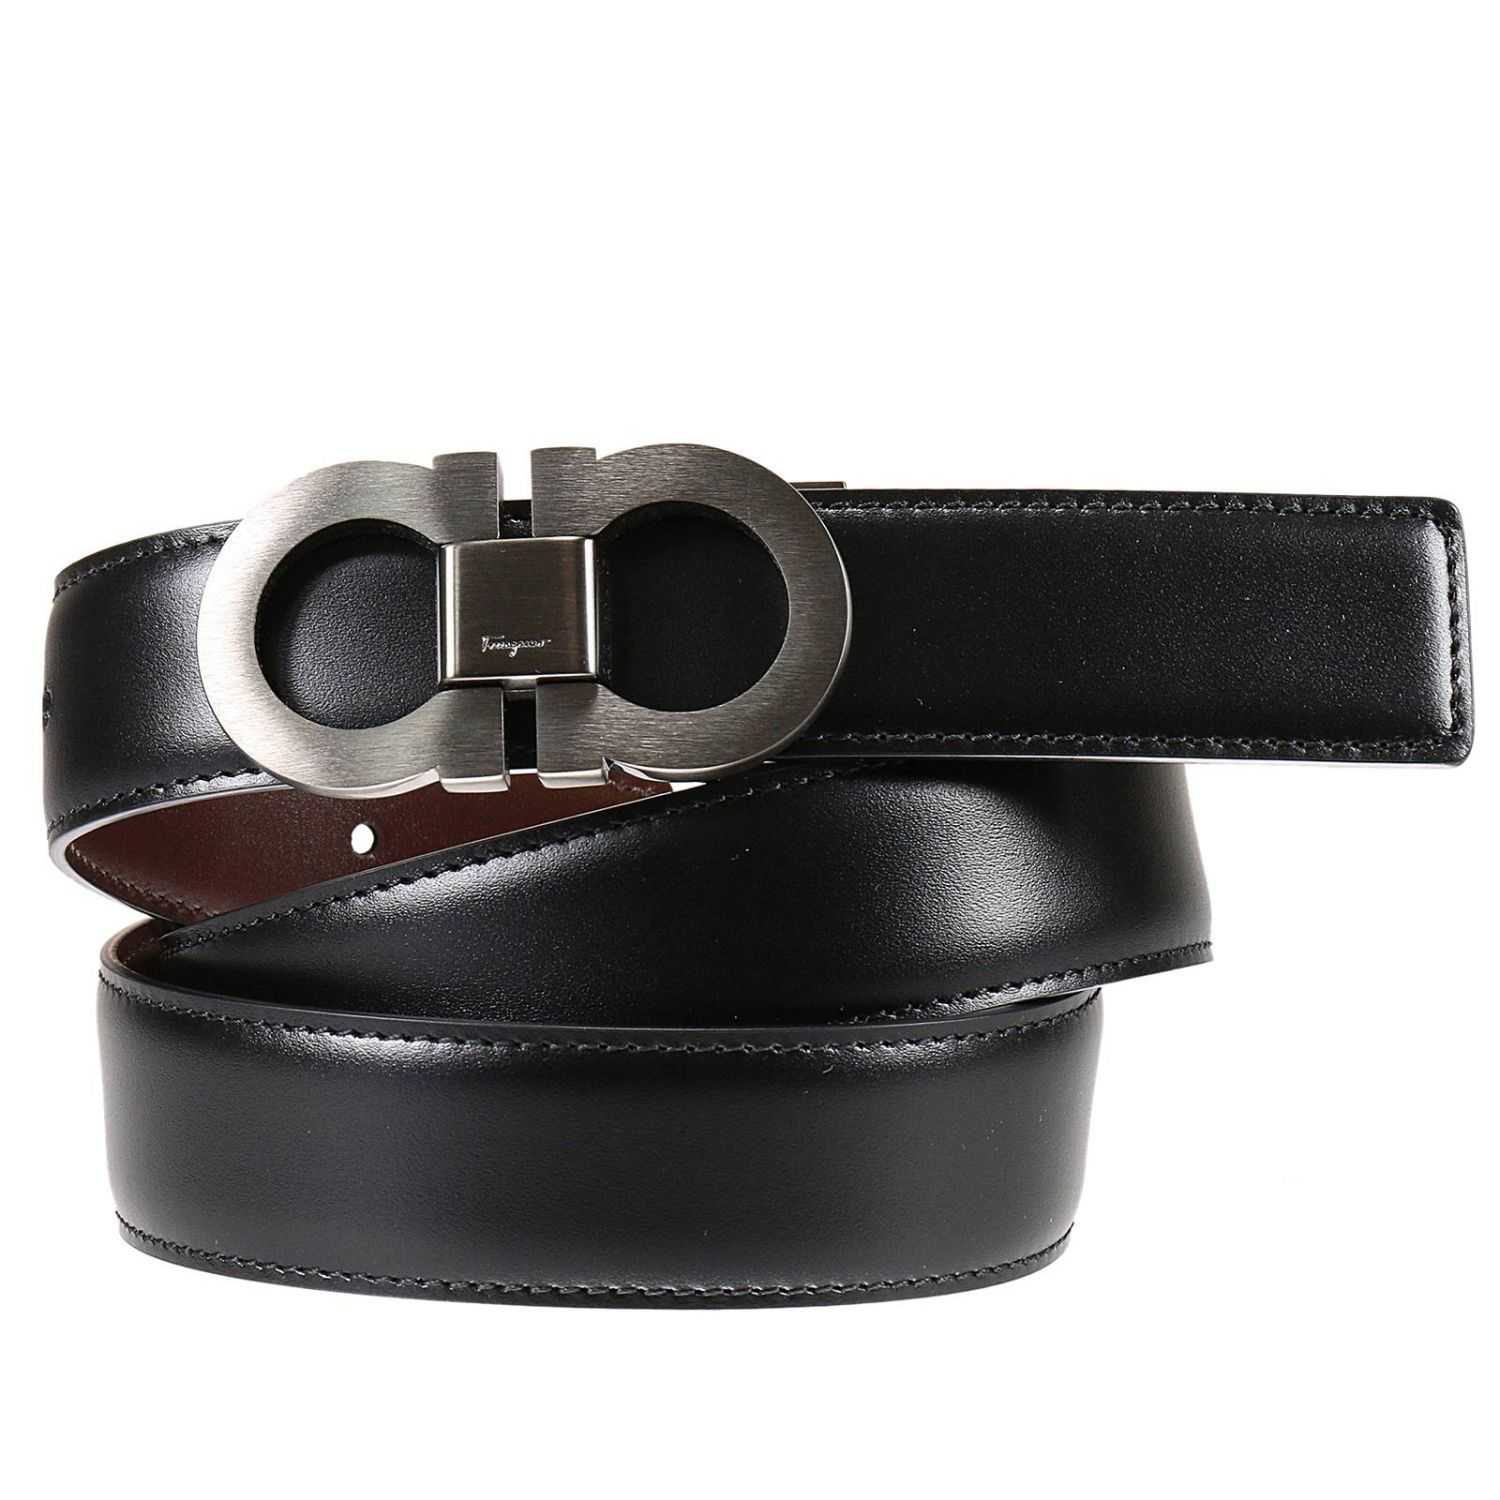 Huge selection of quality leather dress belts for men and women. You can choose from smooth to embossed to suede leather.